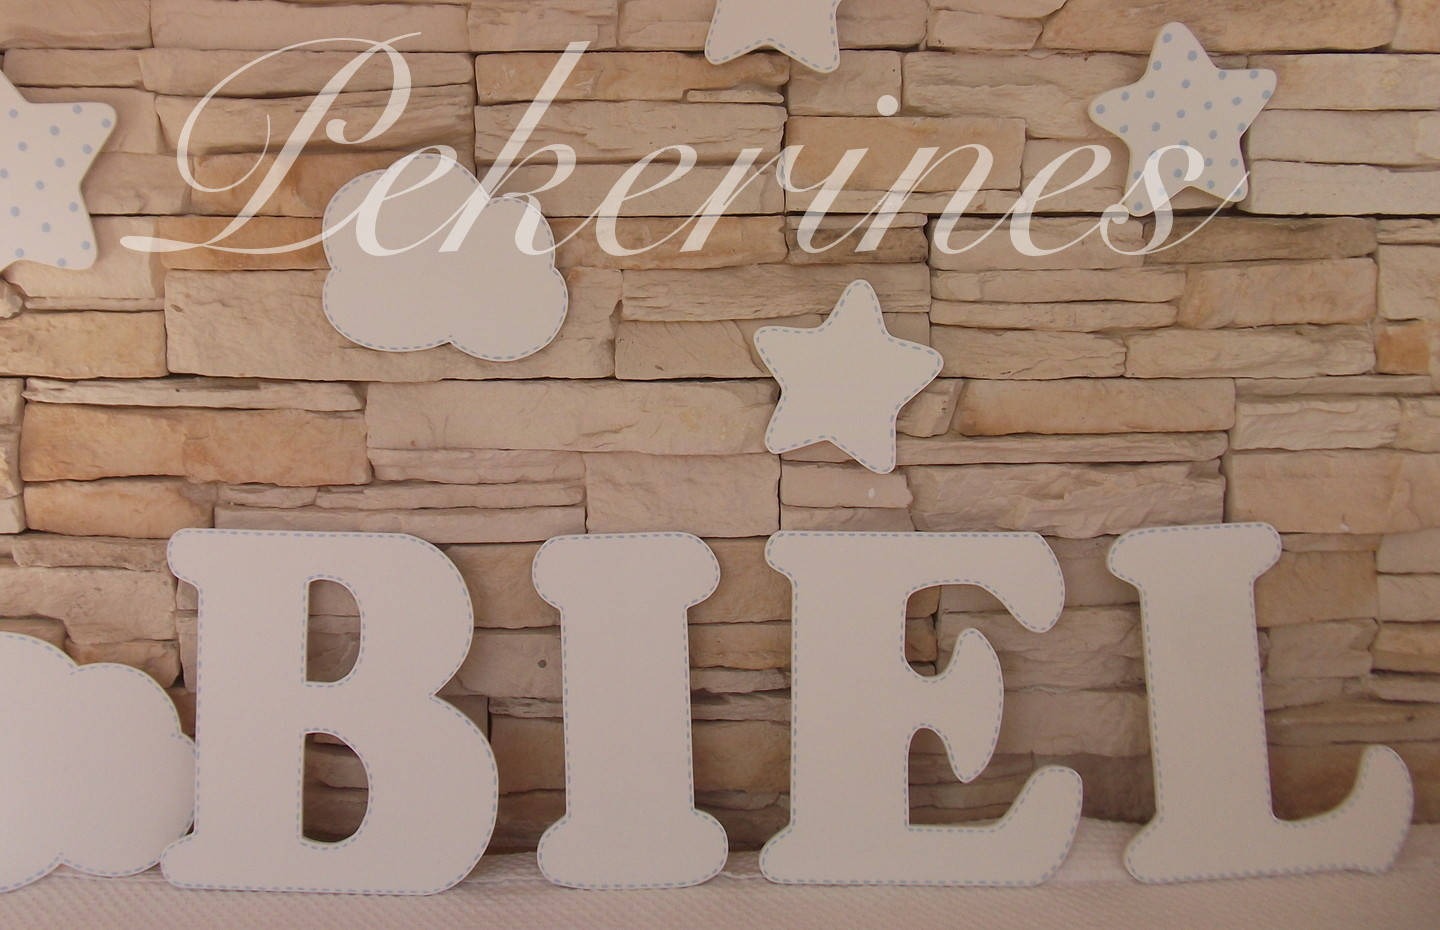 Decoraci n infantil pekerines letras de madera decoraci n - Letras bebe decoracion ...